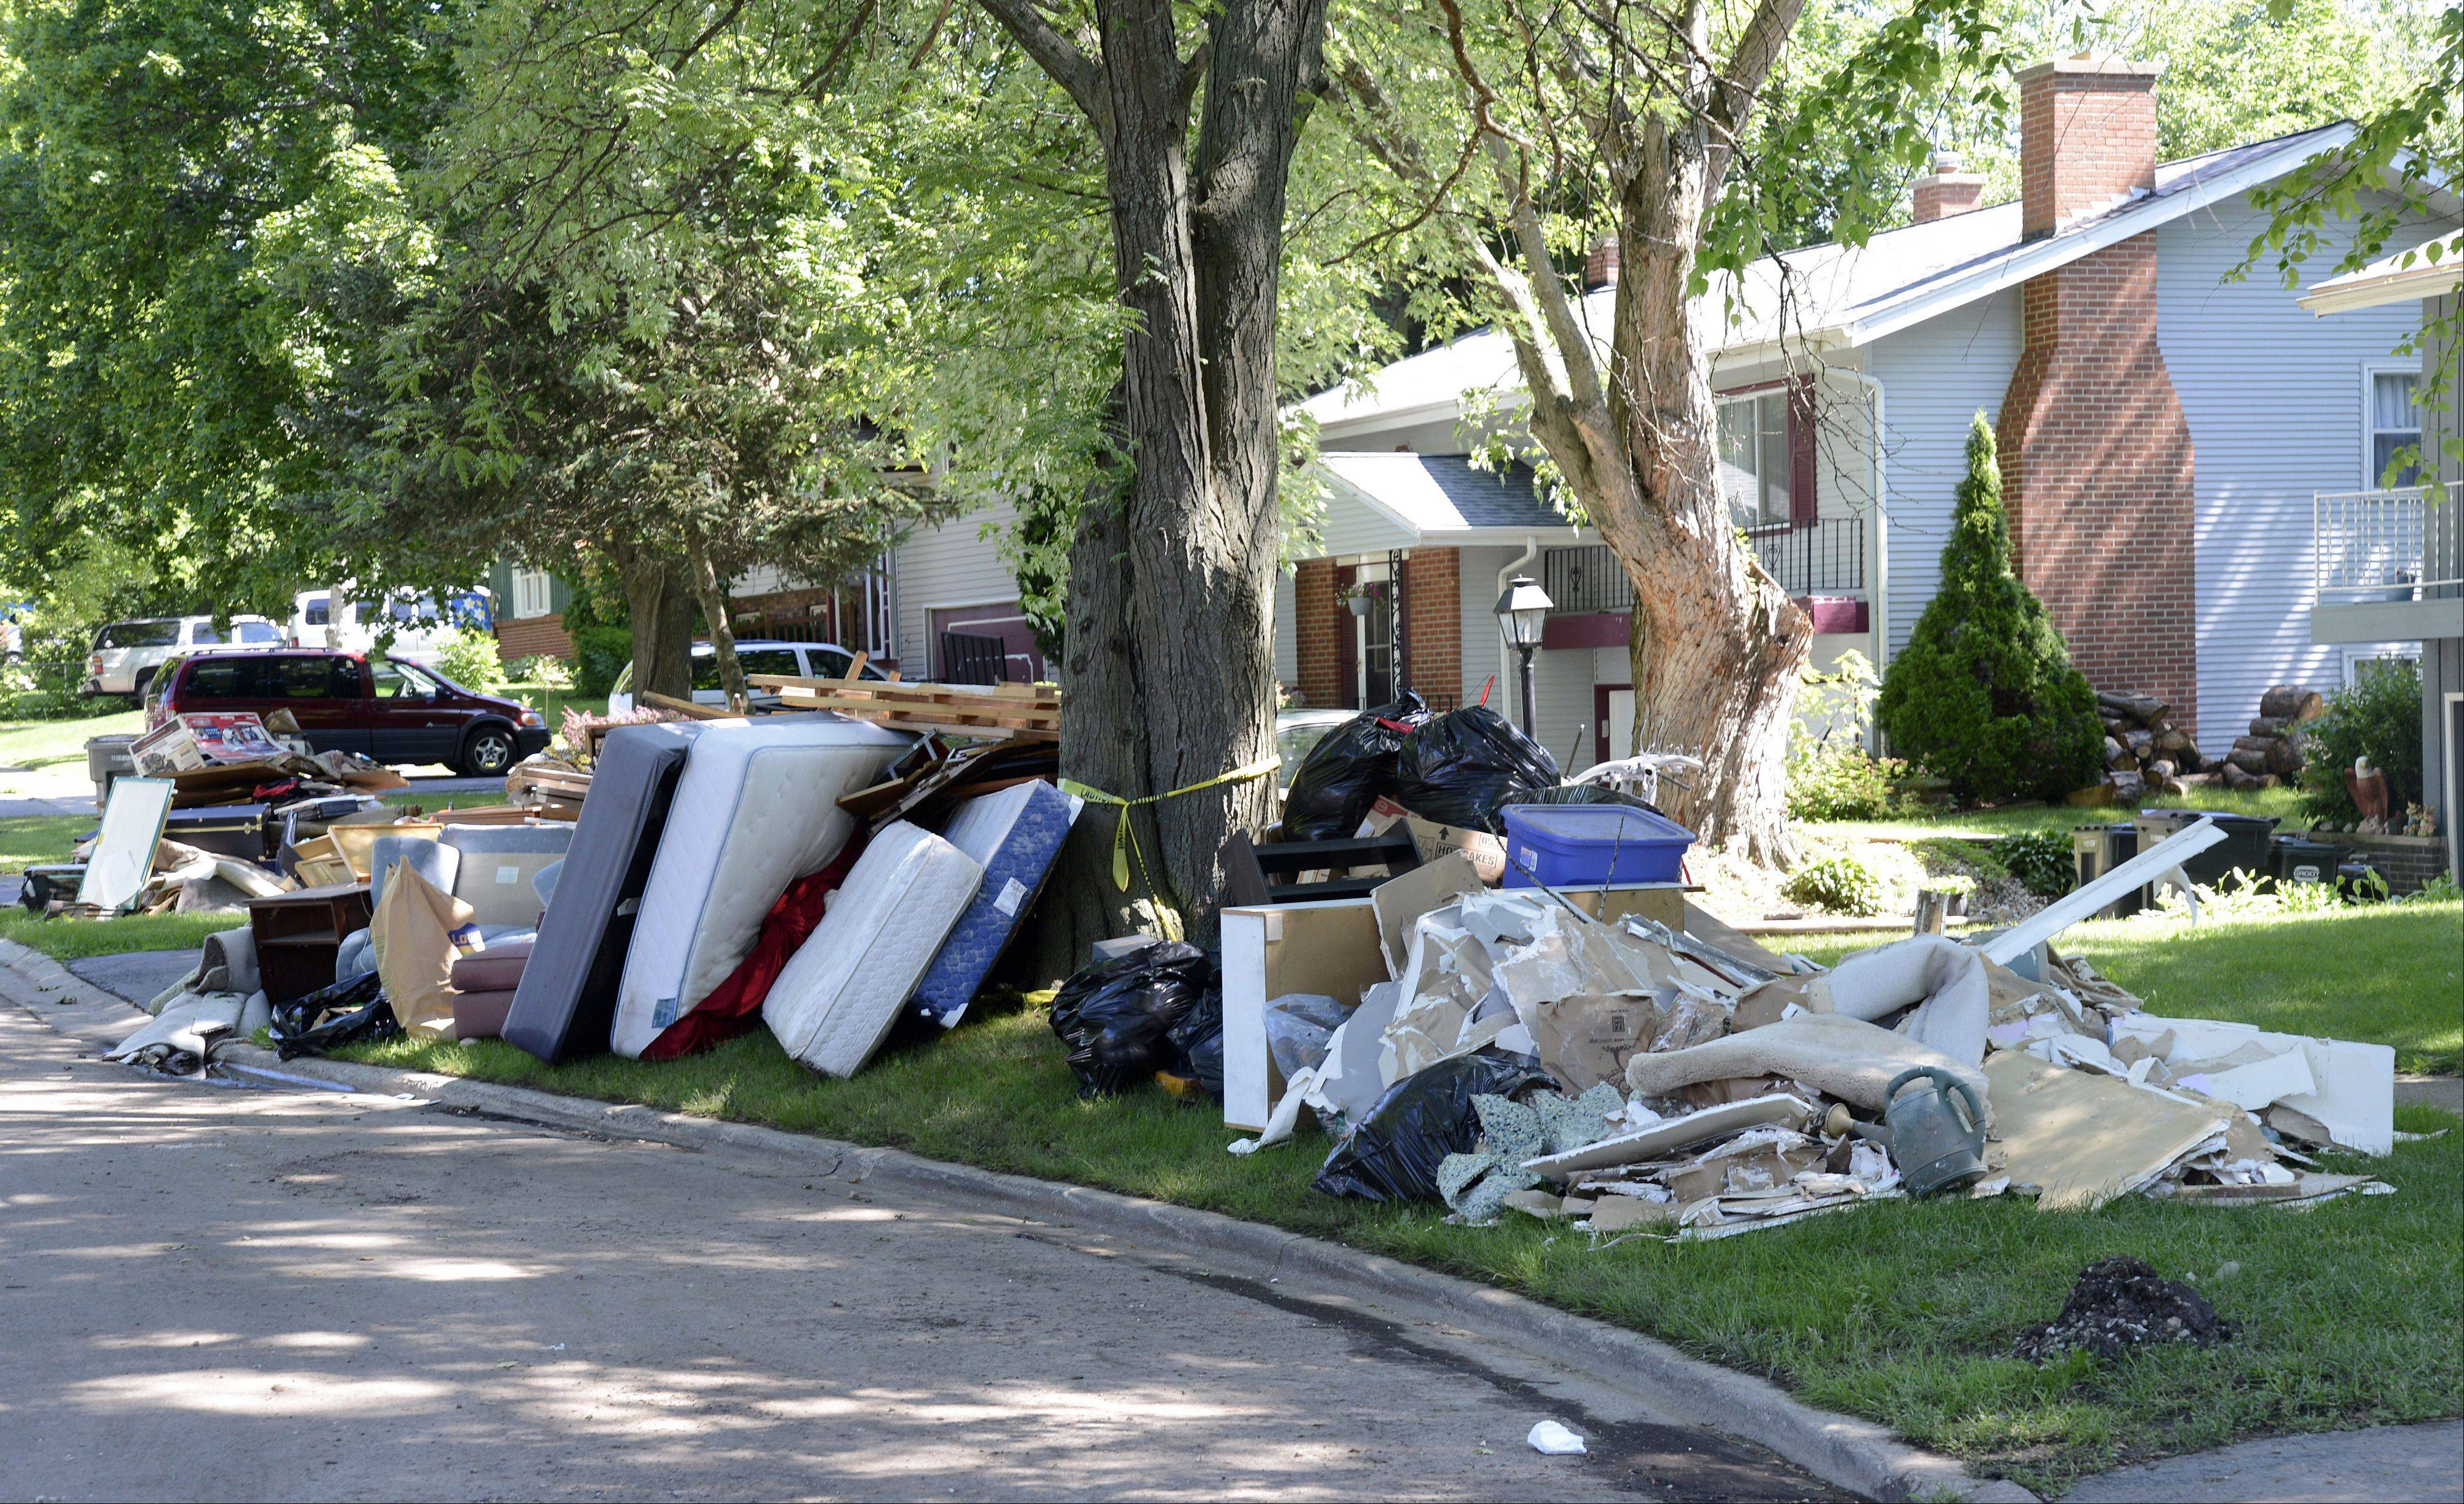 Damaged items from the homes line Crest Drive in Cary. The village arranged a special trash pickup at no charge to the residents Friday and are holding a special meeting for the Sunset/Crest residents July 11 to help them secure money for their damaged property.